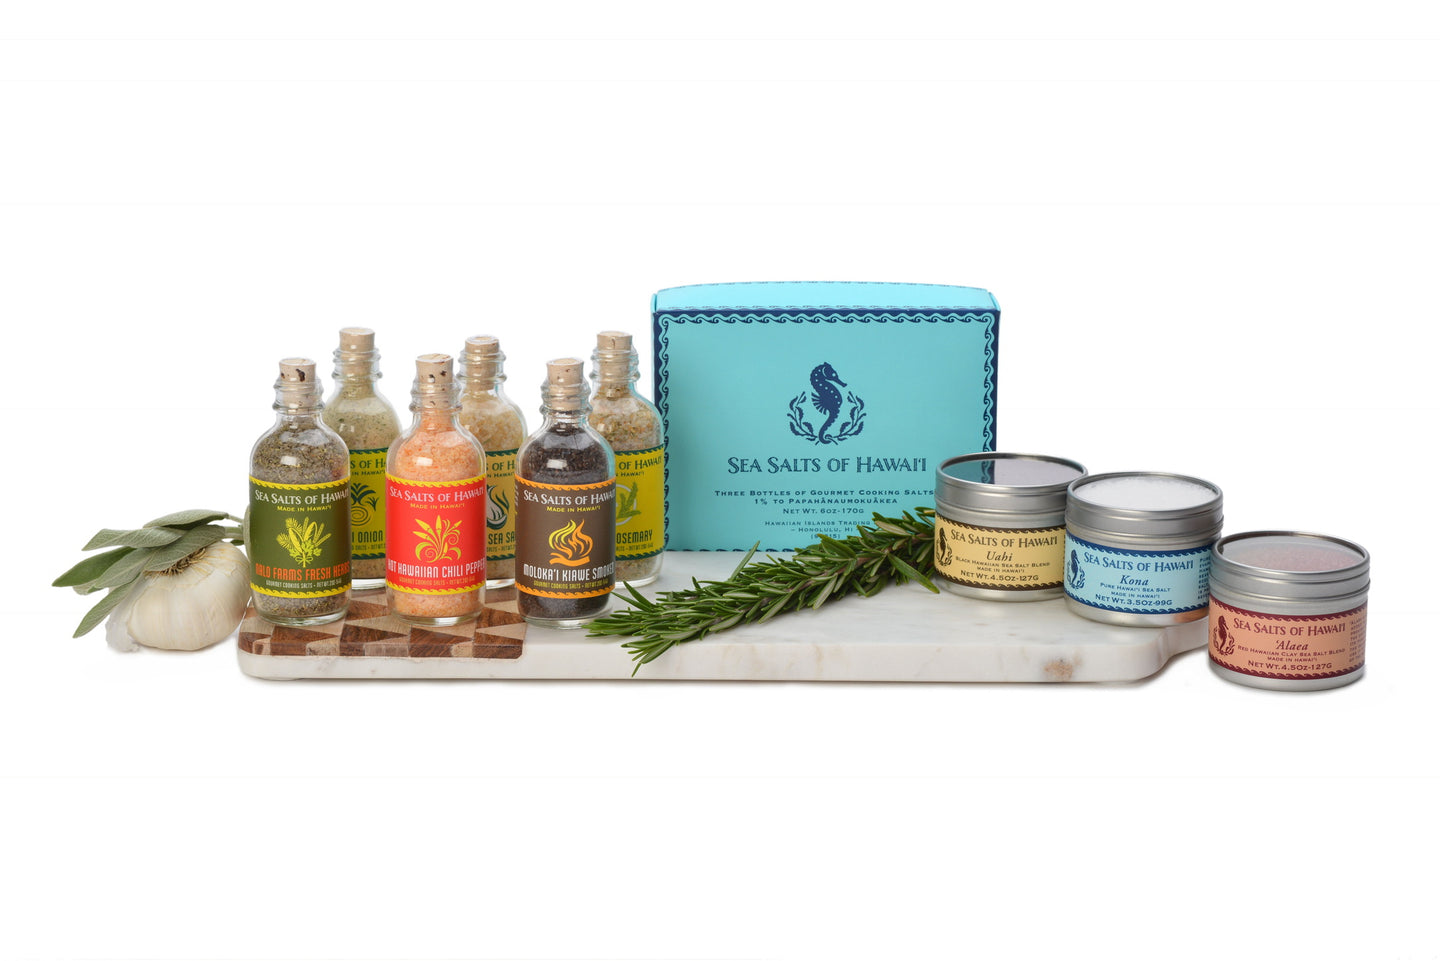 Hawaiian Sea Salts Gifts